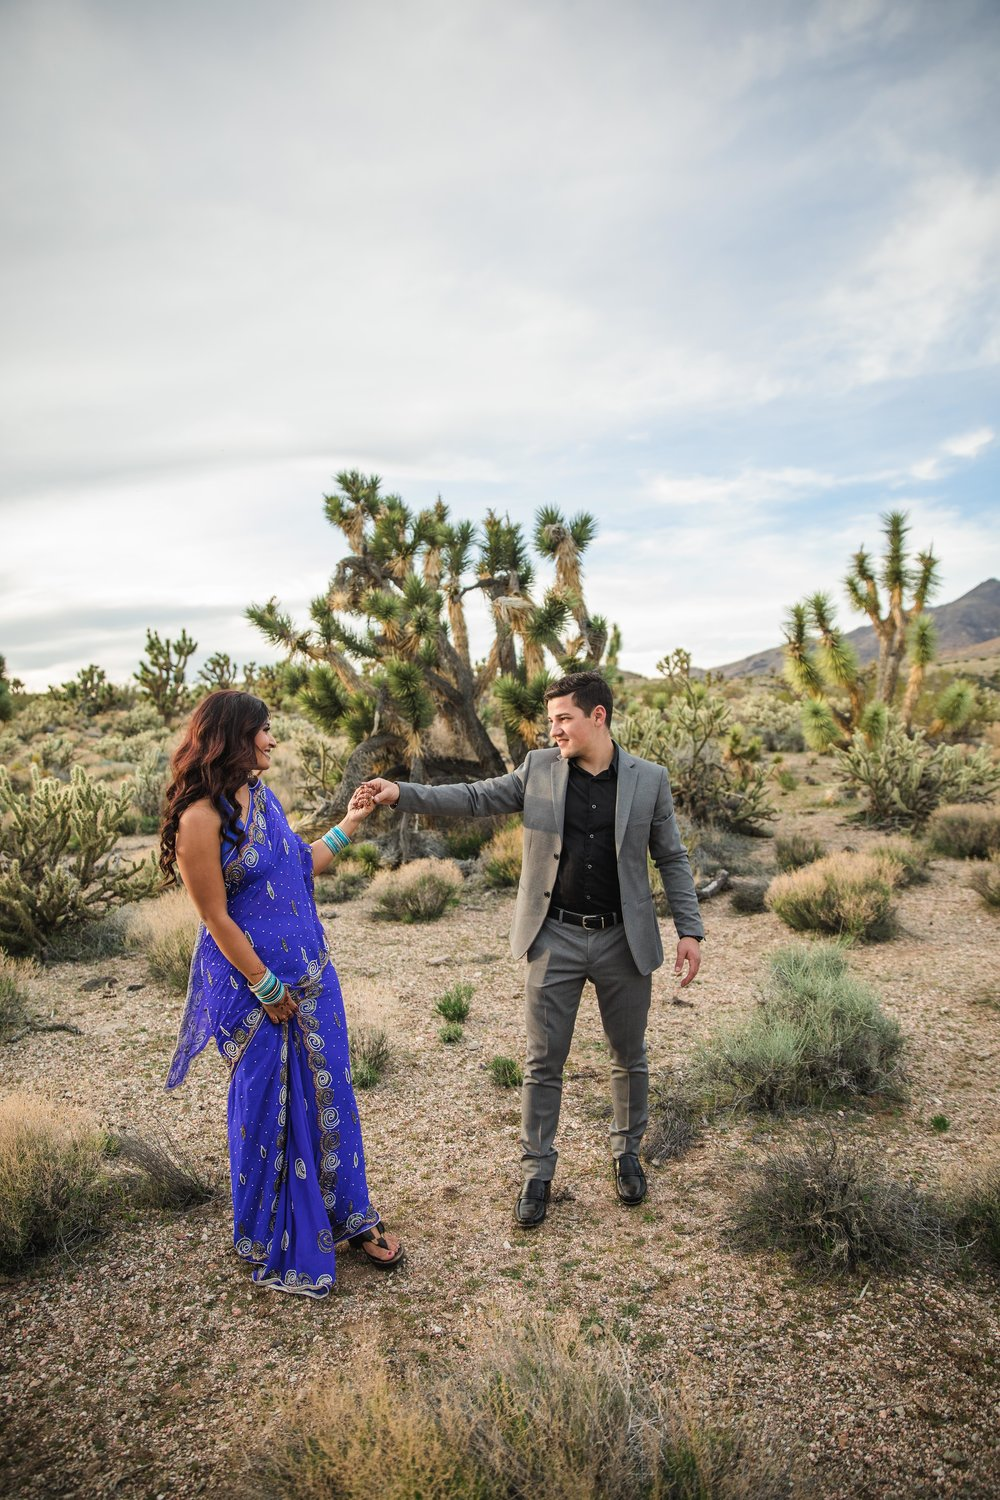 Dancing in the desert indian wedding elopement Kyle and Tori Sheppard photographers